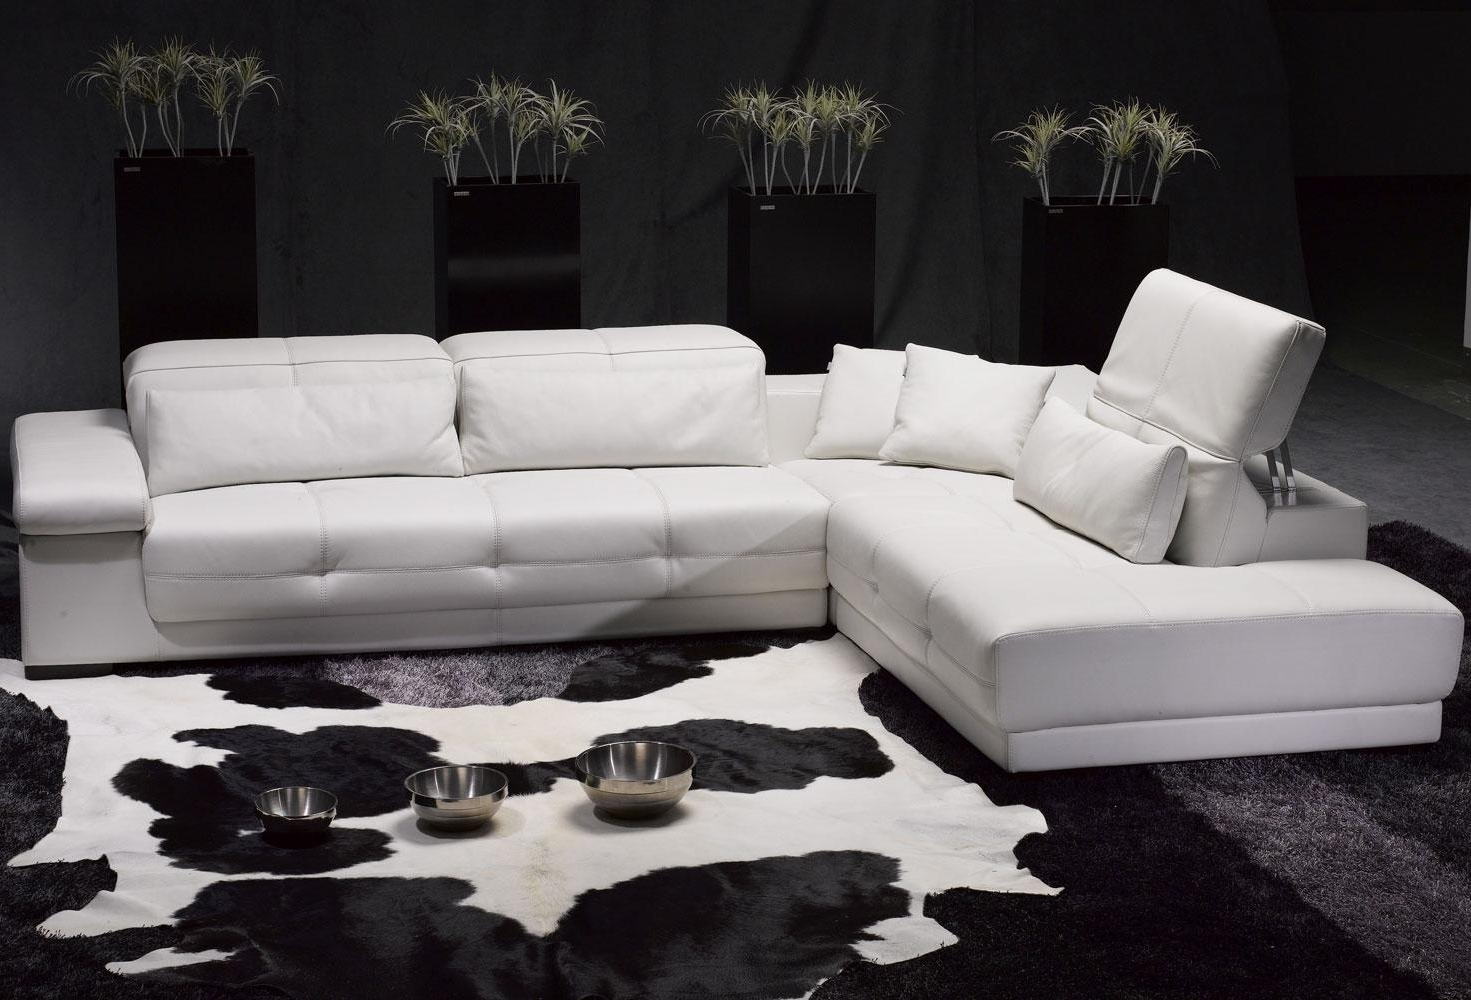 Jenisemay Throughout White Sectional Sofas (View 5 of 20)